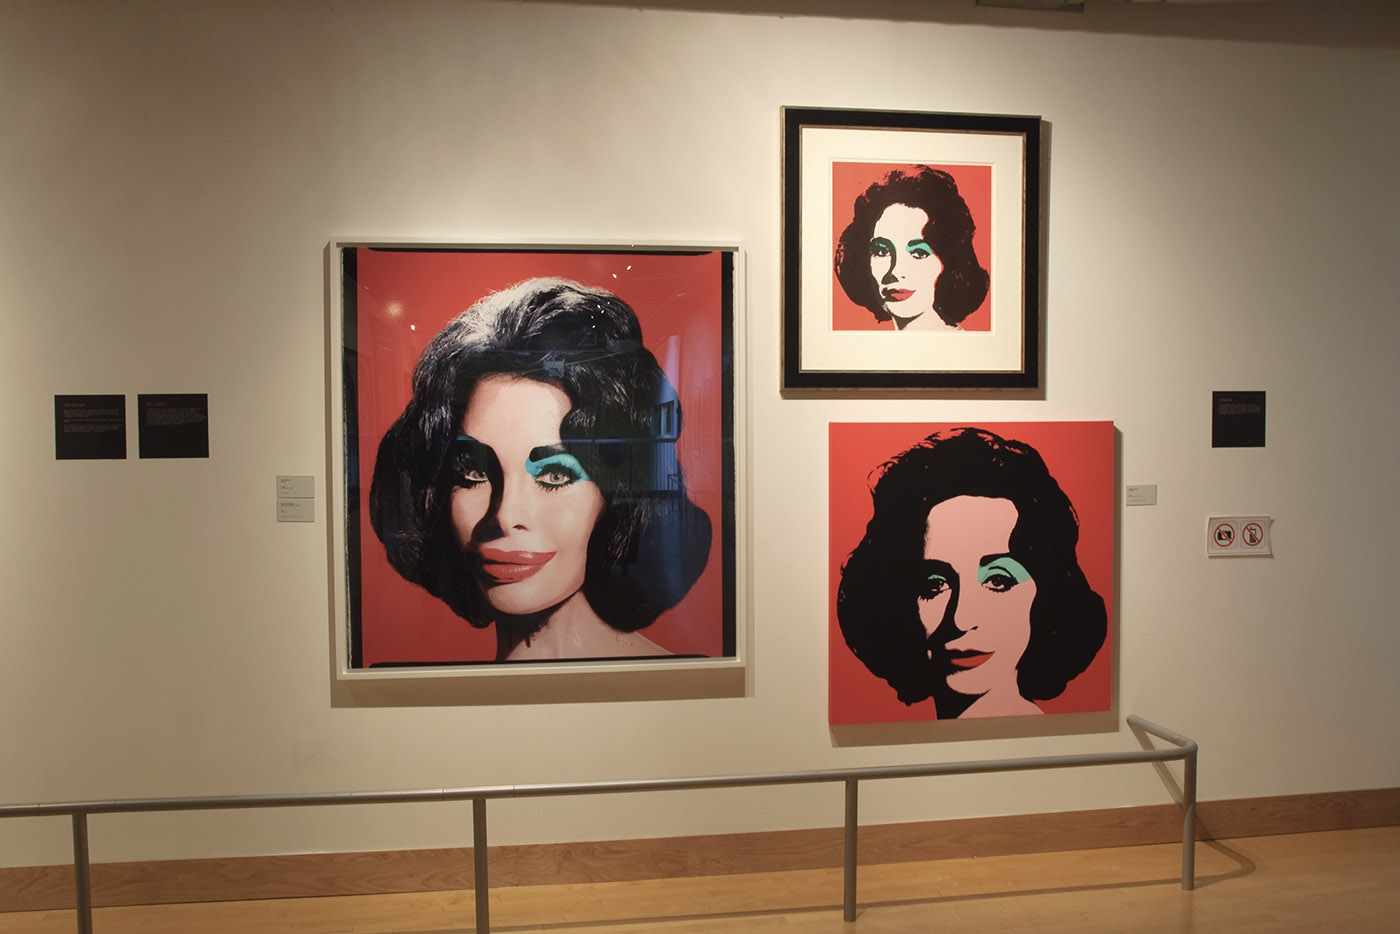 The Art, Inspiration and Appropriation of Andy Warhol